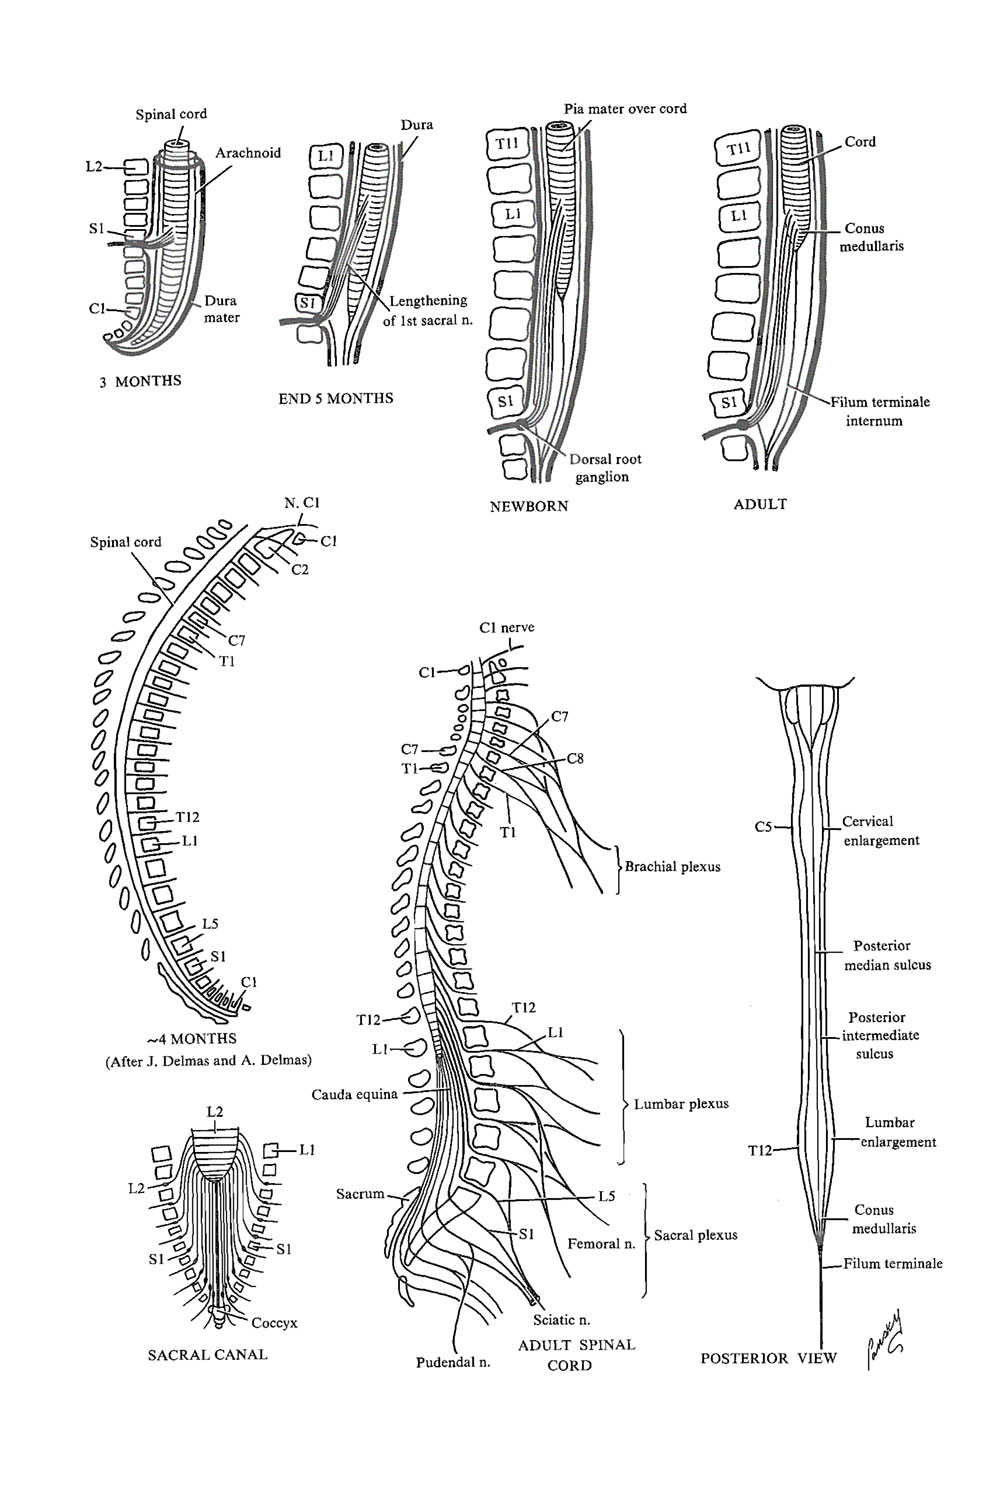 Chapter 144 Spinal Cord Length And Spinal Meninges Review Of Medical Embryology Book Lifemap Discovery The standard approach for sectioning of the filum terminale for a tethered spinal cord can be achieved via a limited s(1) exposure. lifemap discovery lifemap sciences